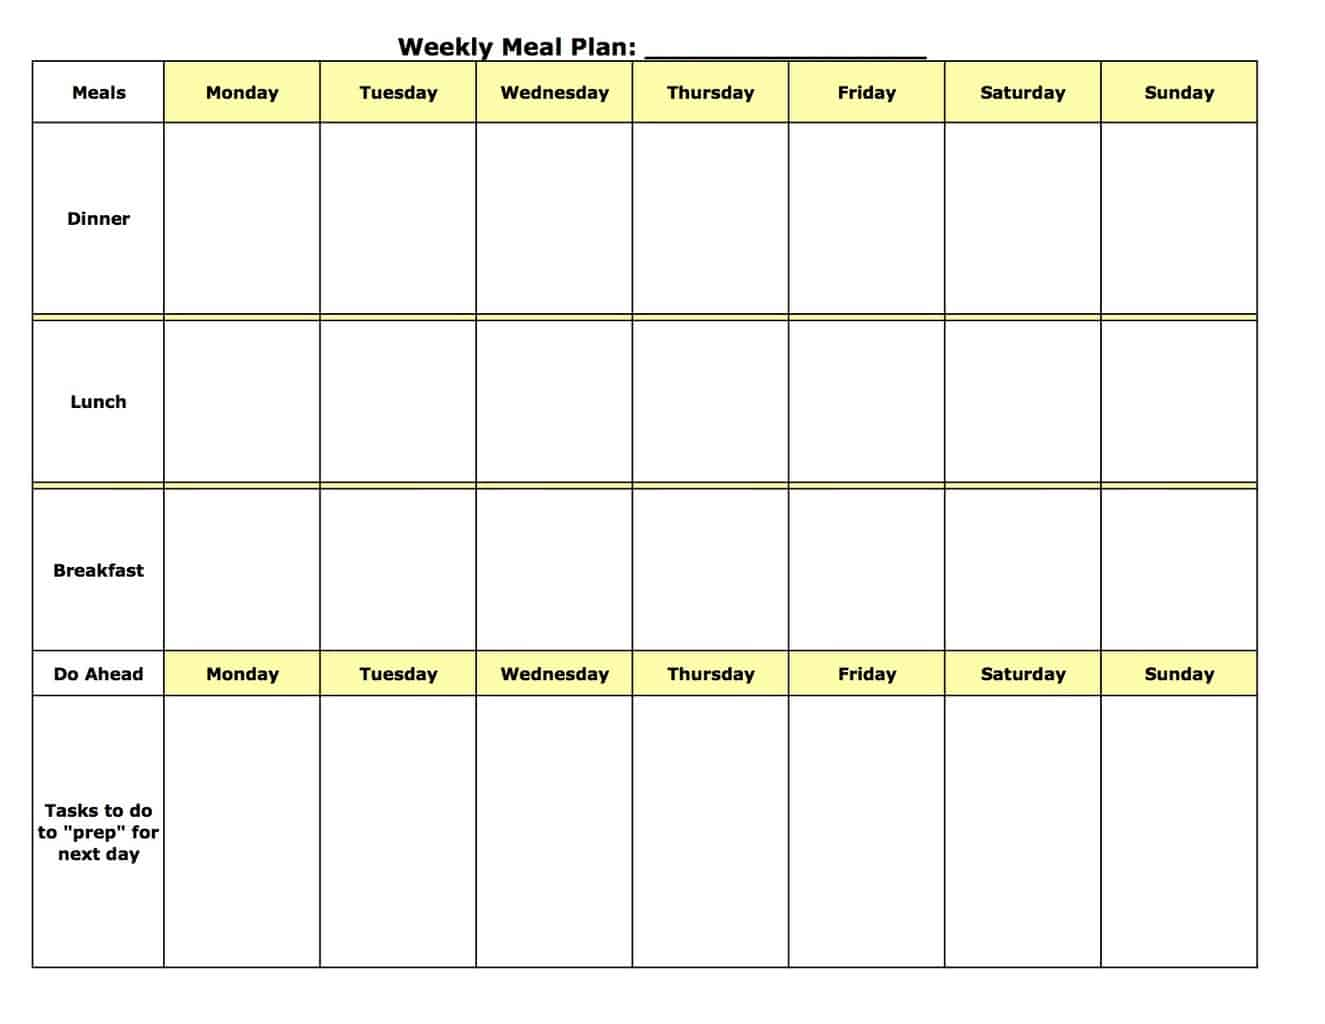 weekly meal planner template 400 x 250 27 kb jpeg blank weekly meal kwQEQQlG